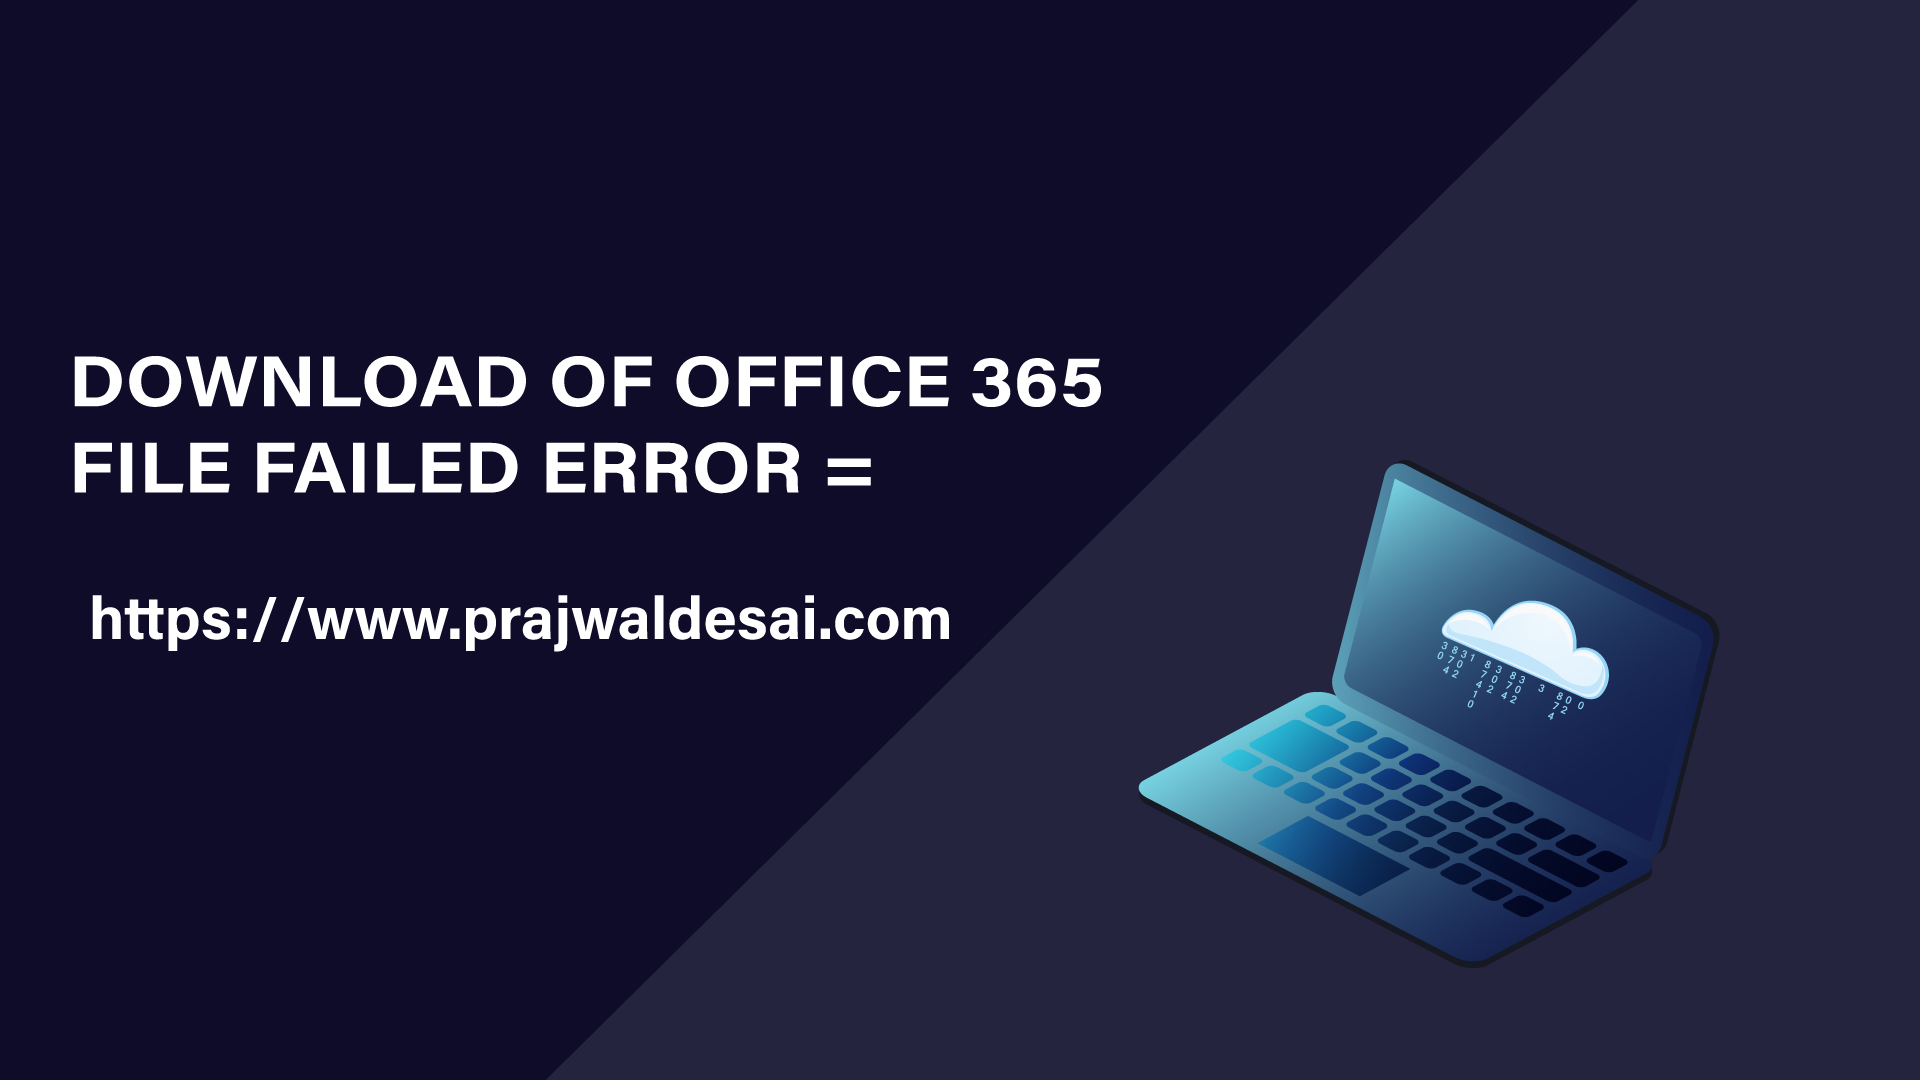 Download of Office 365 file failed Error